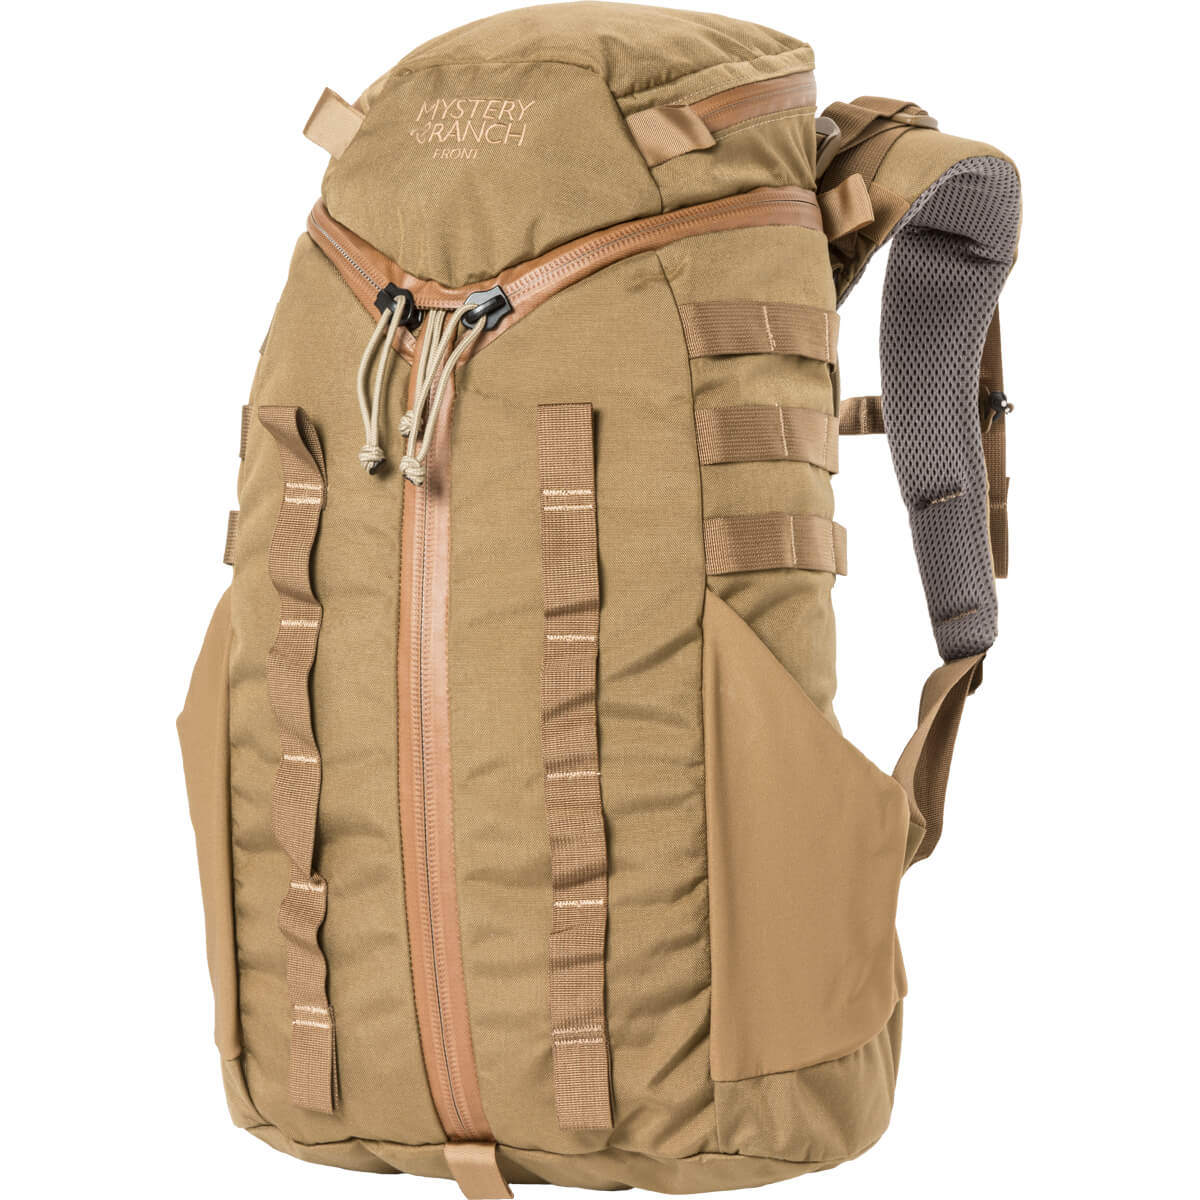 Mystery Ranch Front Daypack 20 l